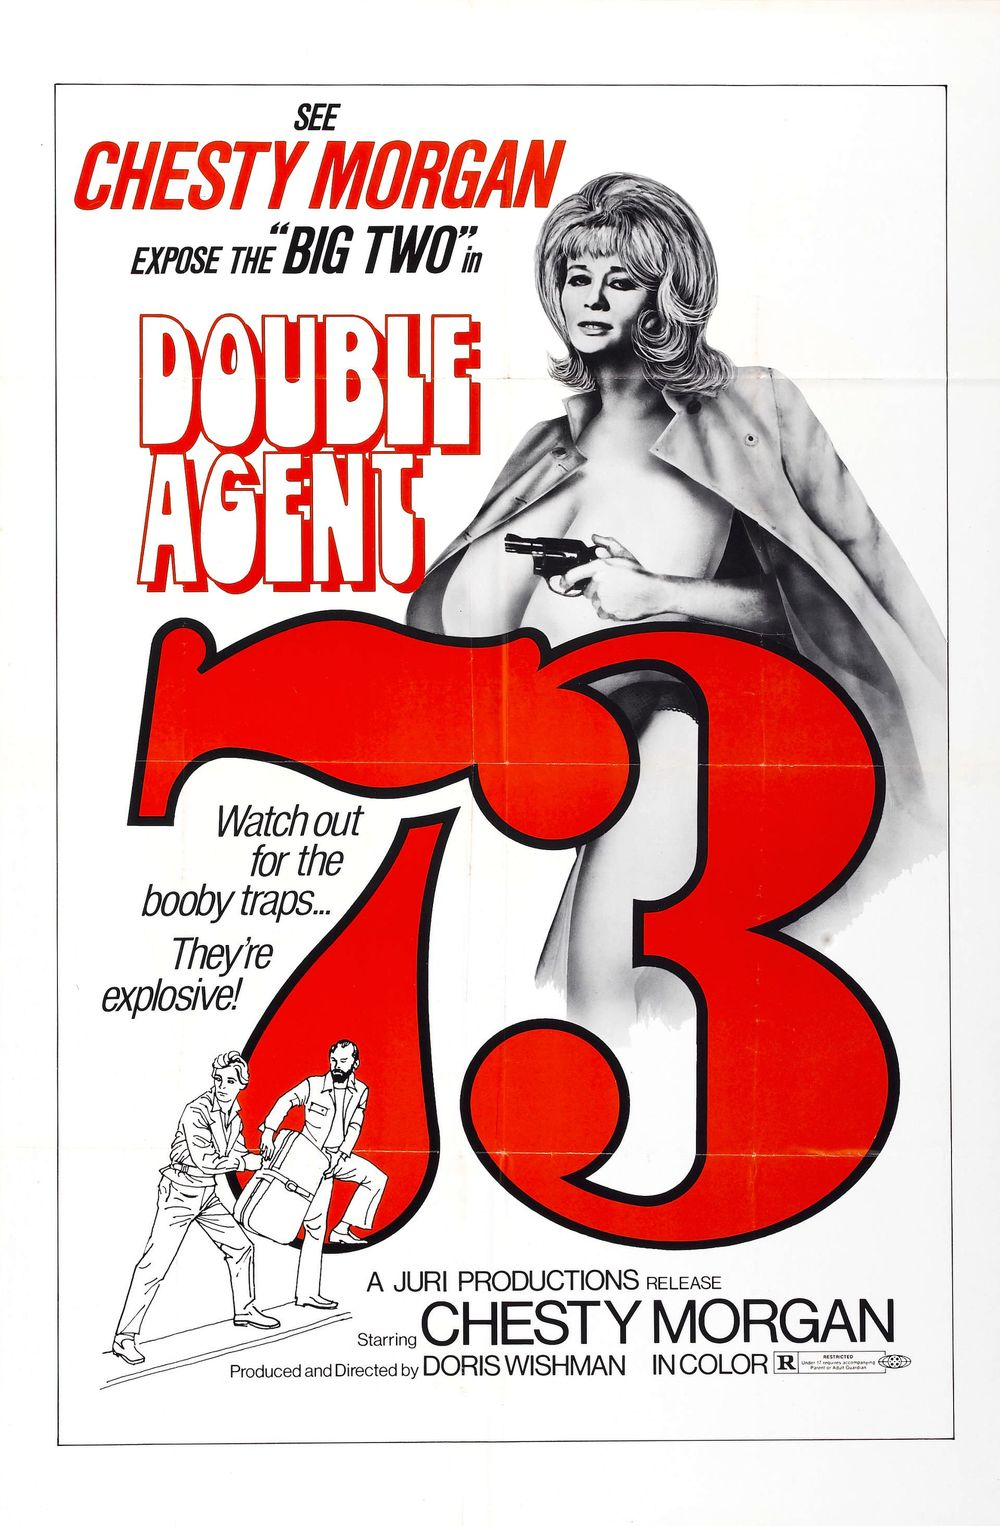 Double_agent_73_poster_01.jpg